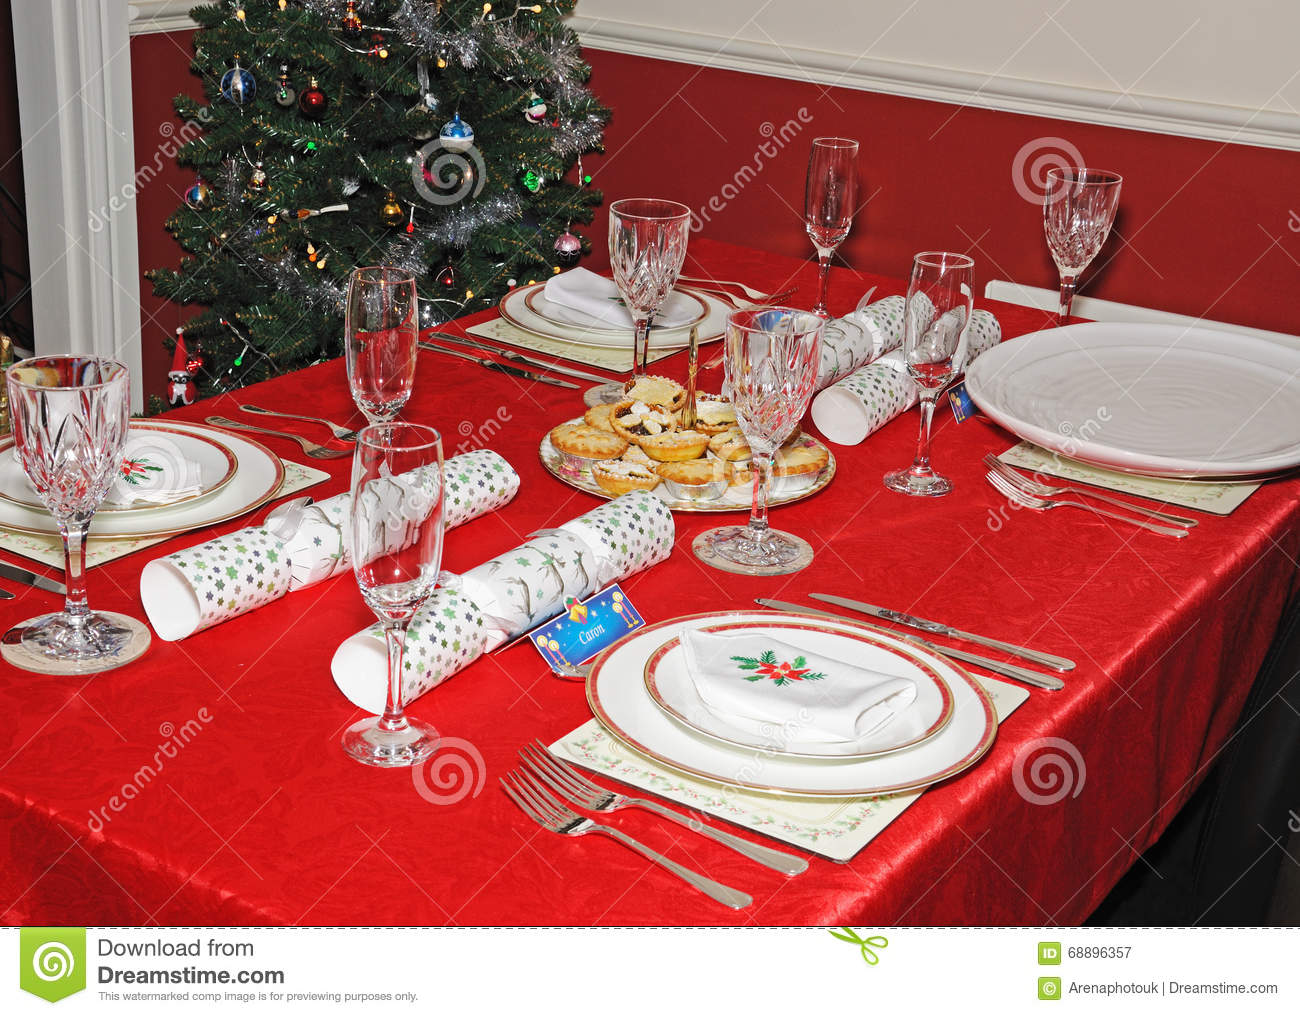 Christmas Dinner Table Setting. Stock Image - Image of england ...